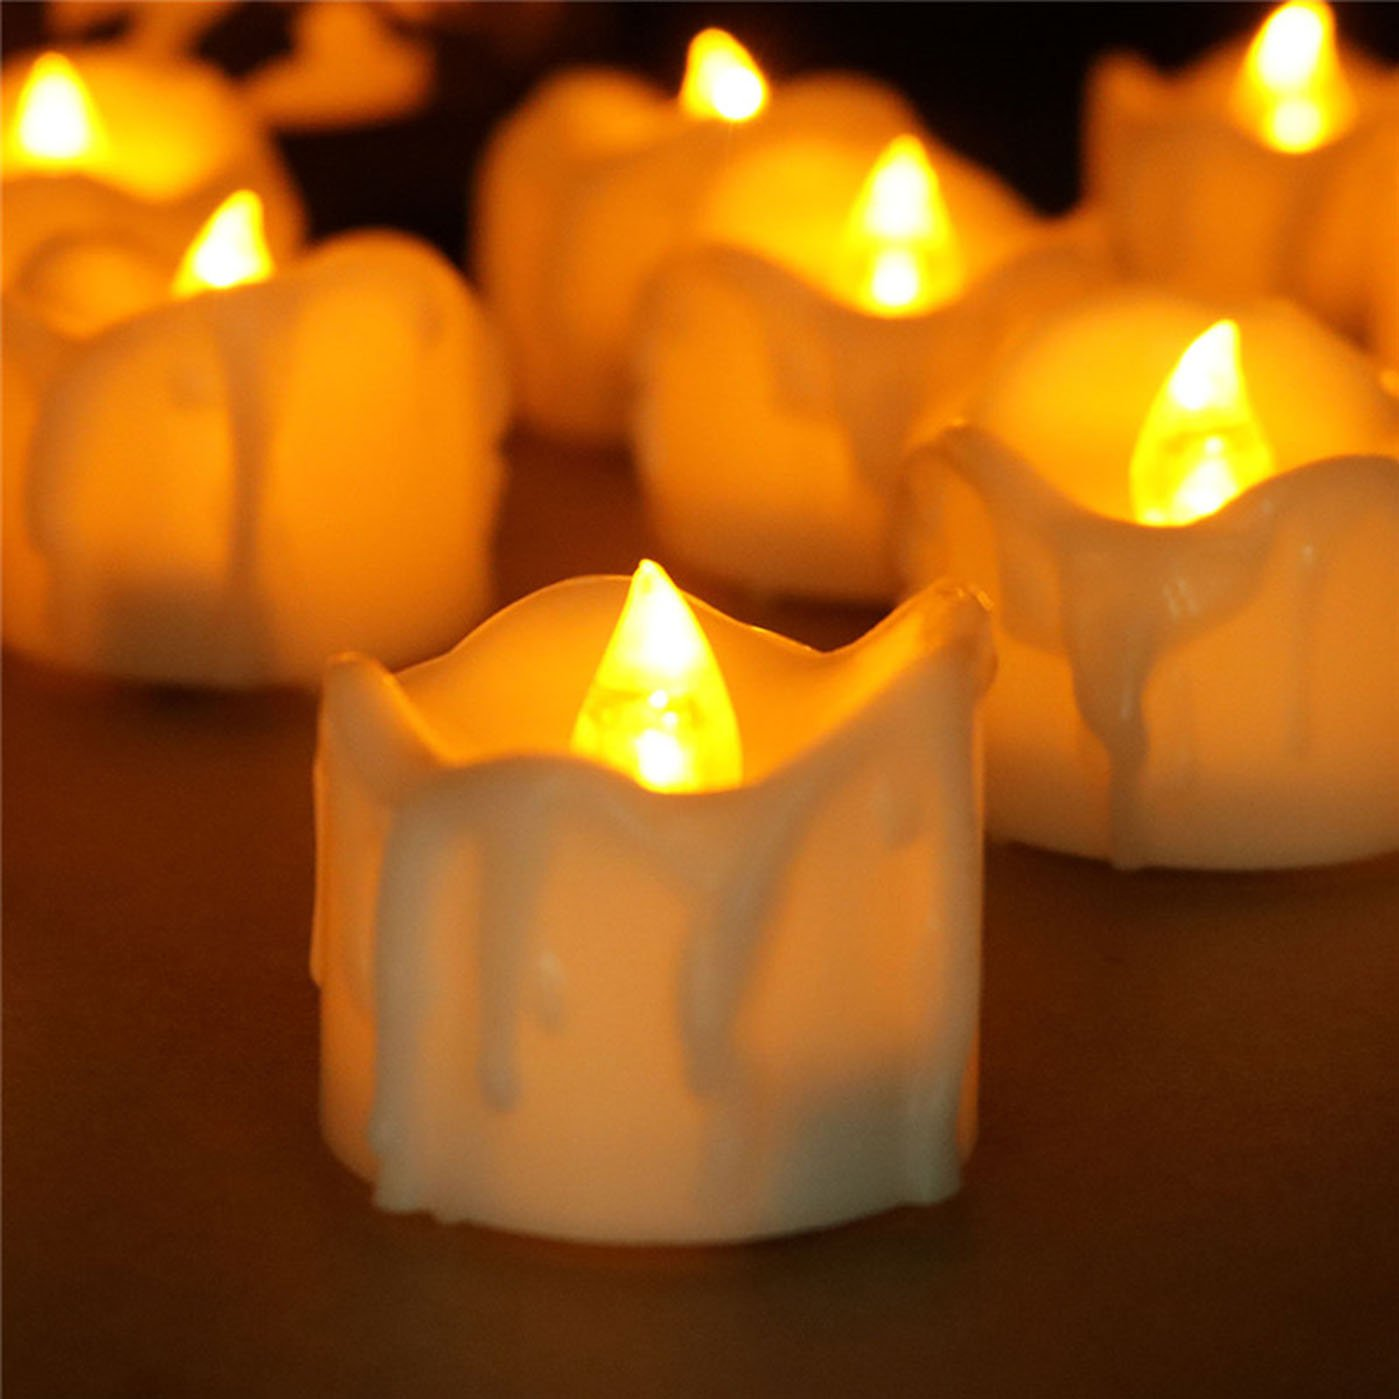 Dellukee Drop Tear LED Tea Lights With Timer 24 Pack Realistic Warm White Flickering Battery Operated Bright Cute Flameless Candles For Wedding Birthday Family Party Halloween Christmas Decoration LZ-LLSF24-CDL6012F